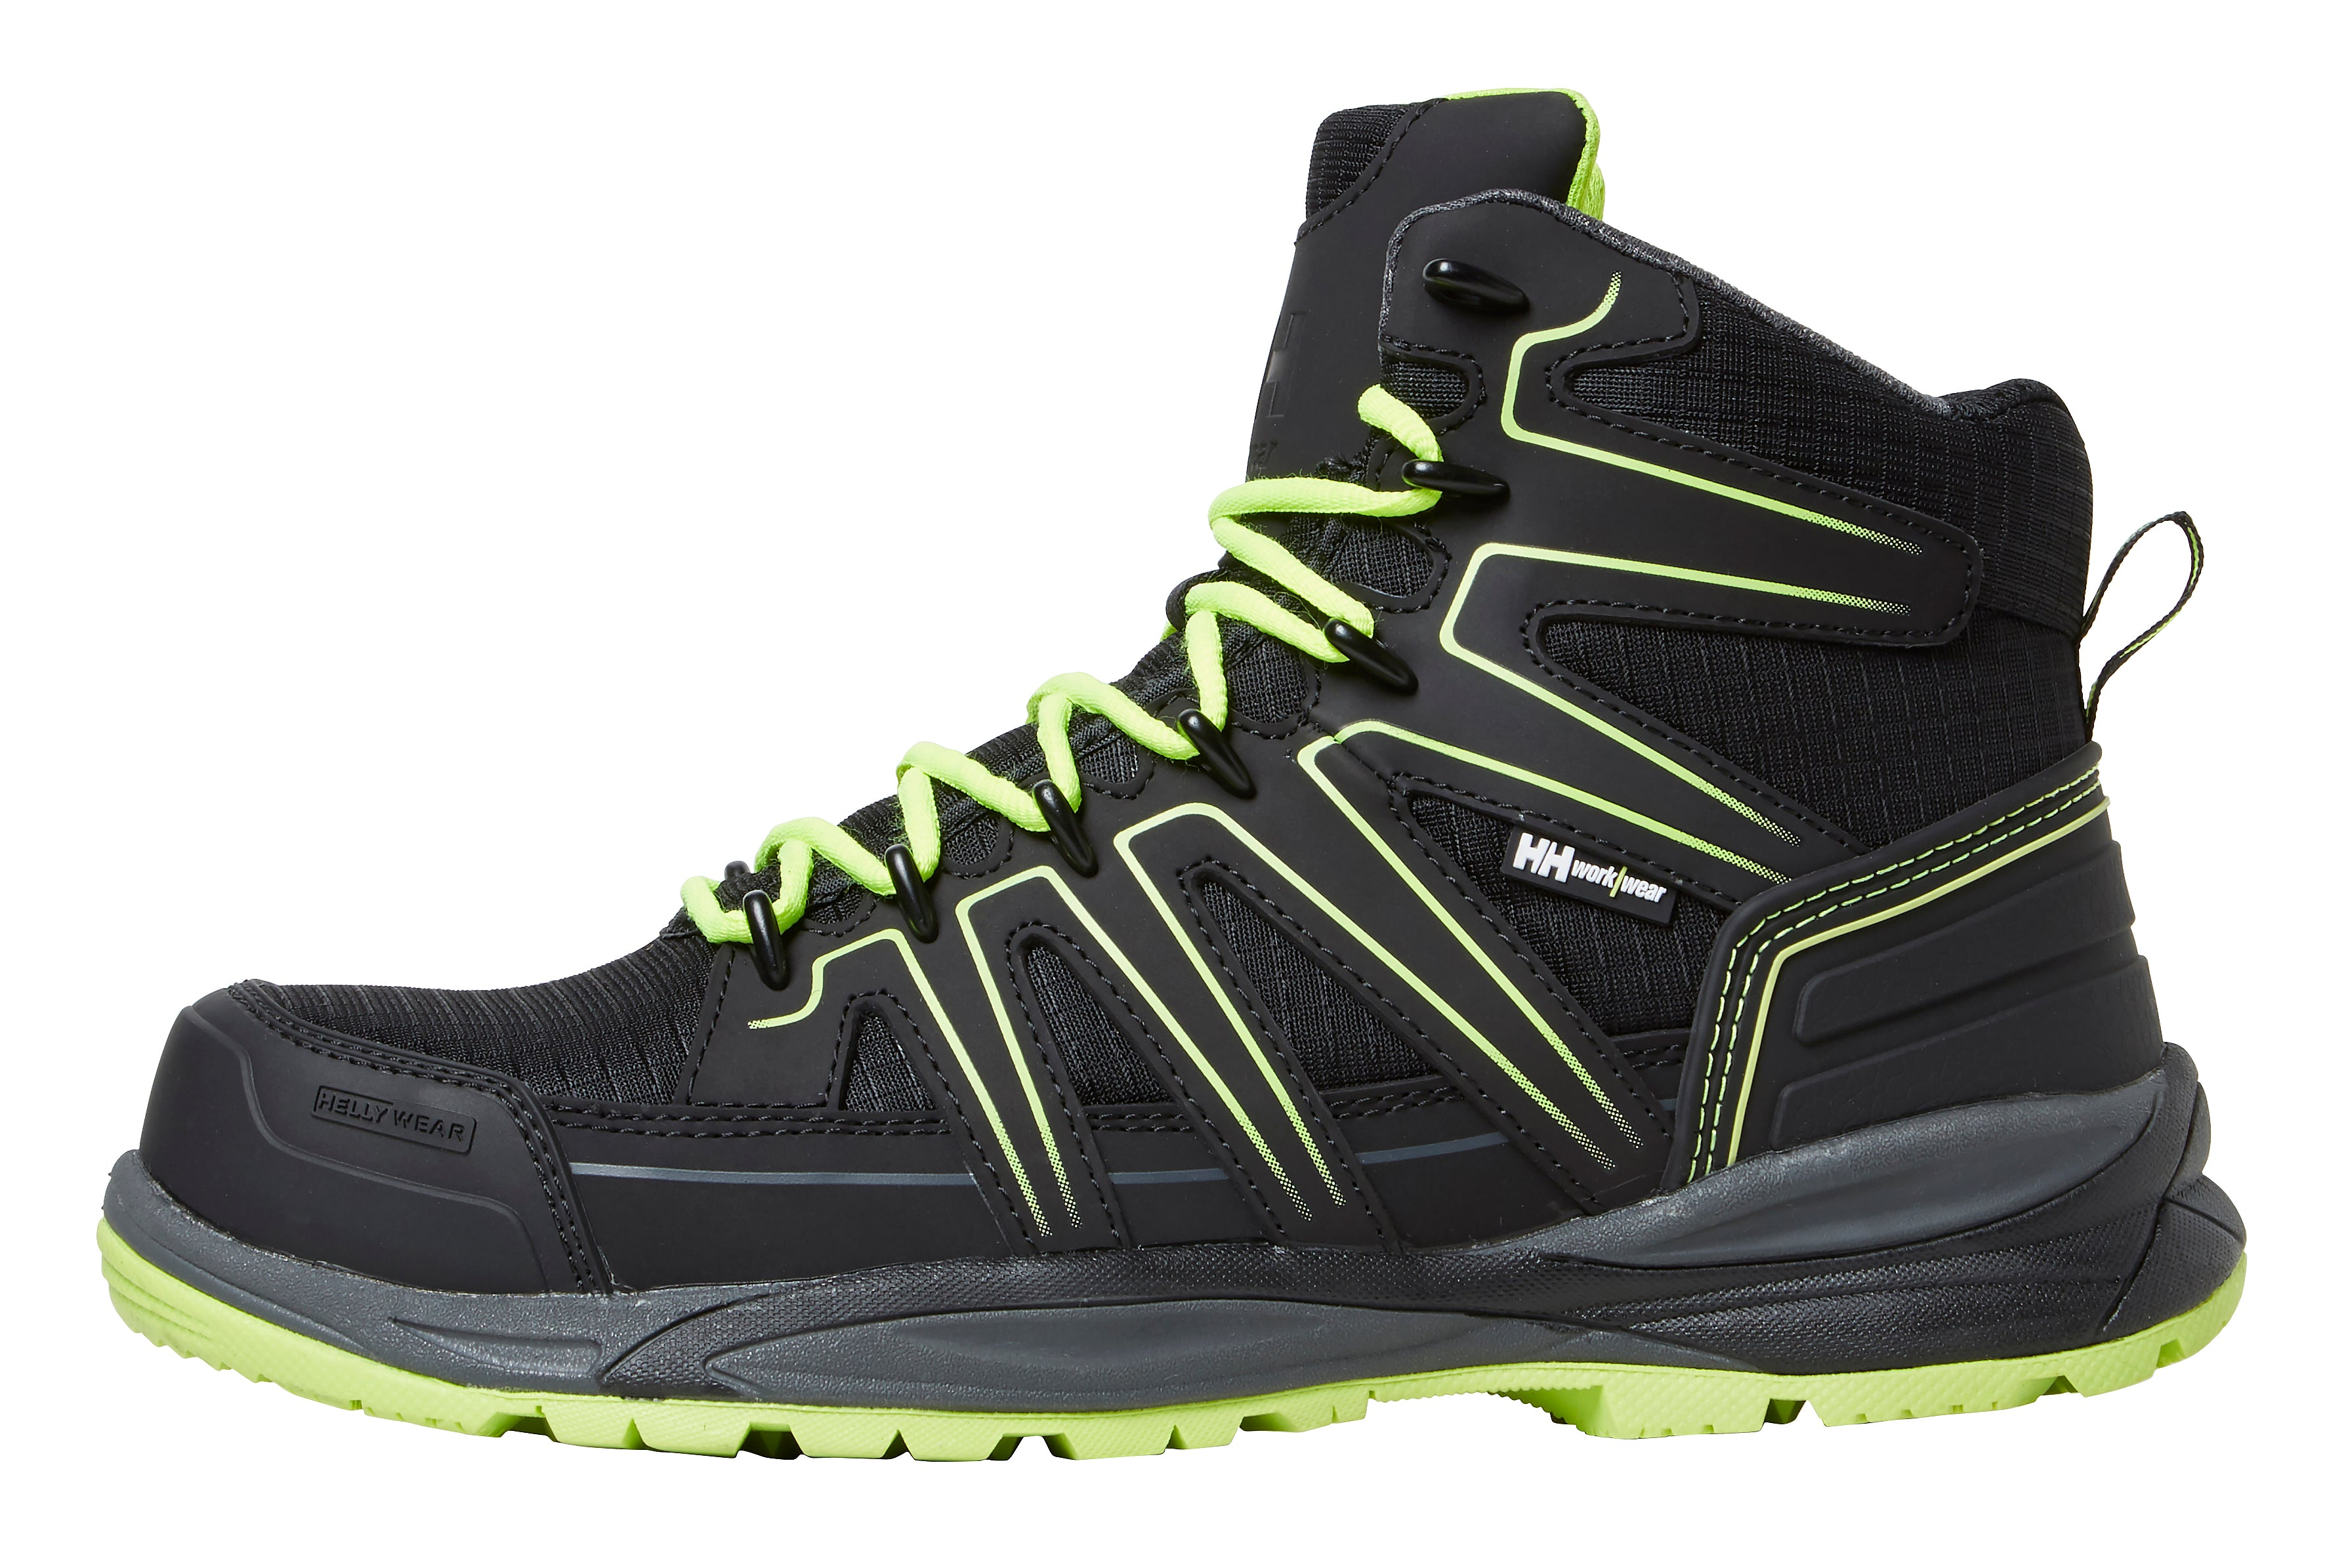 timeless design 83f18 46007 Helly Hansen 78267 Addvis Mid Safety Boots